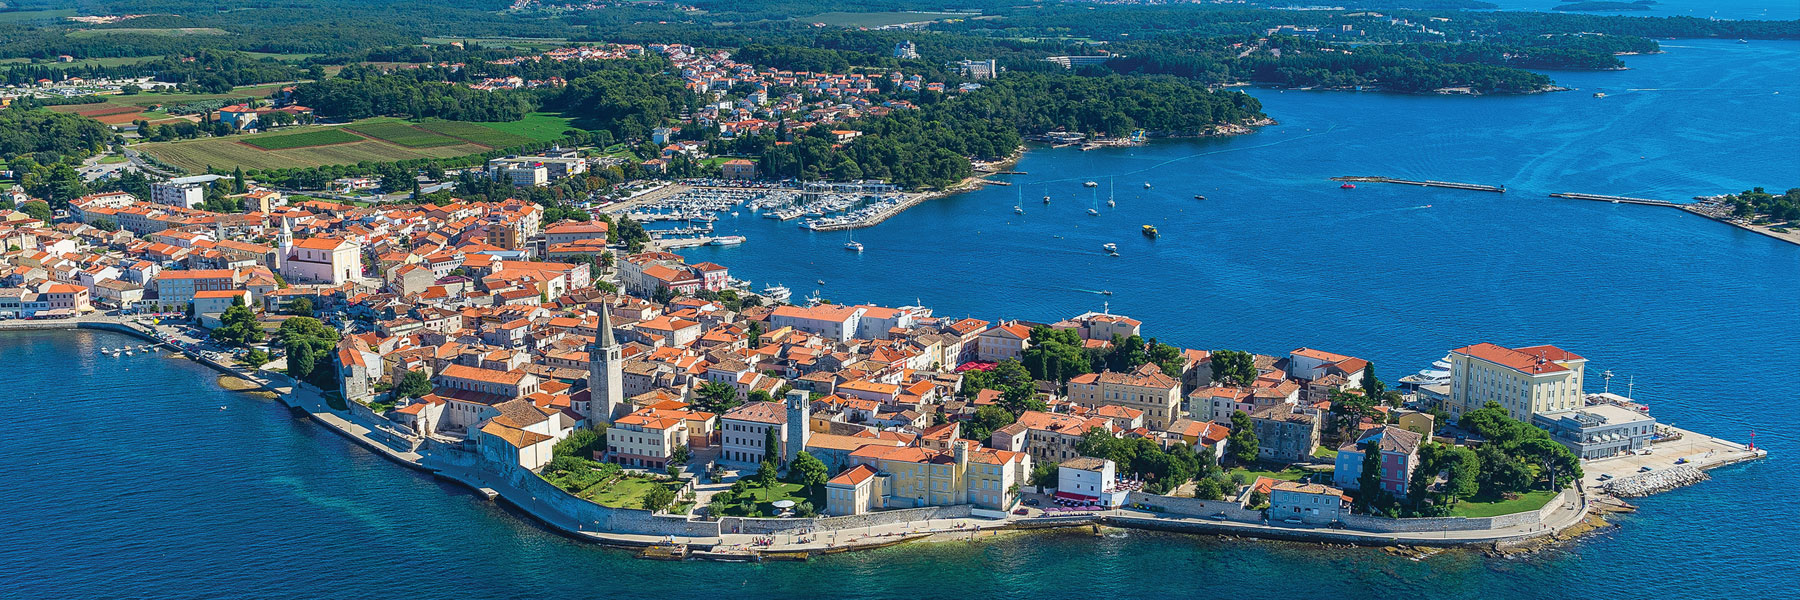 Bird's eye view of the city of Porec, which is set around a harbour protected from the crystal clear sea